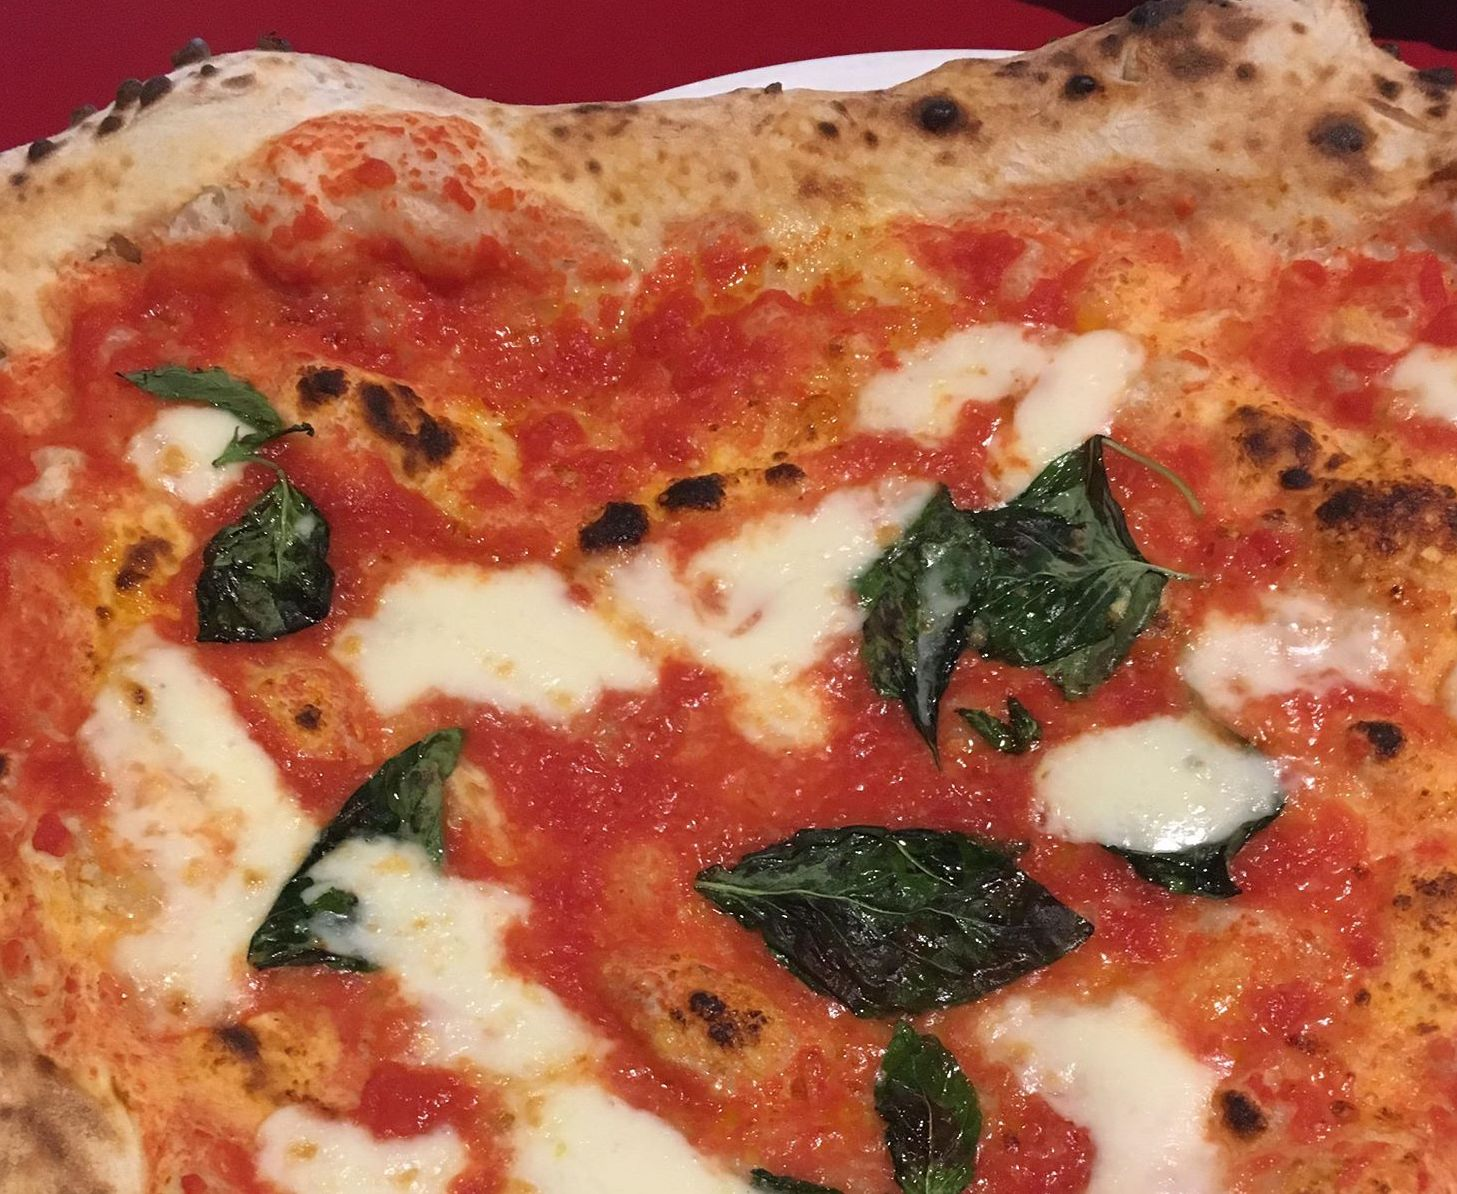 A classic Margherita pizza at Pizza Pilgrims